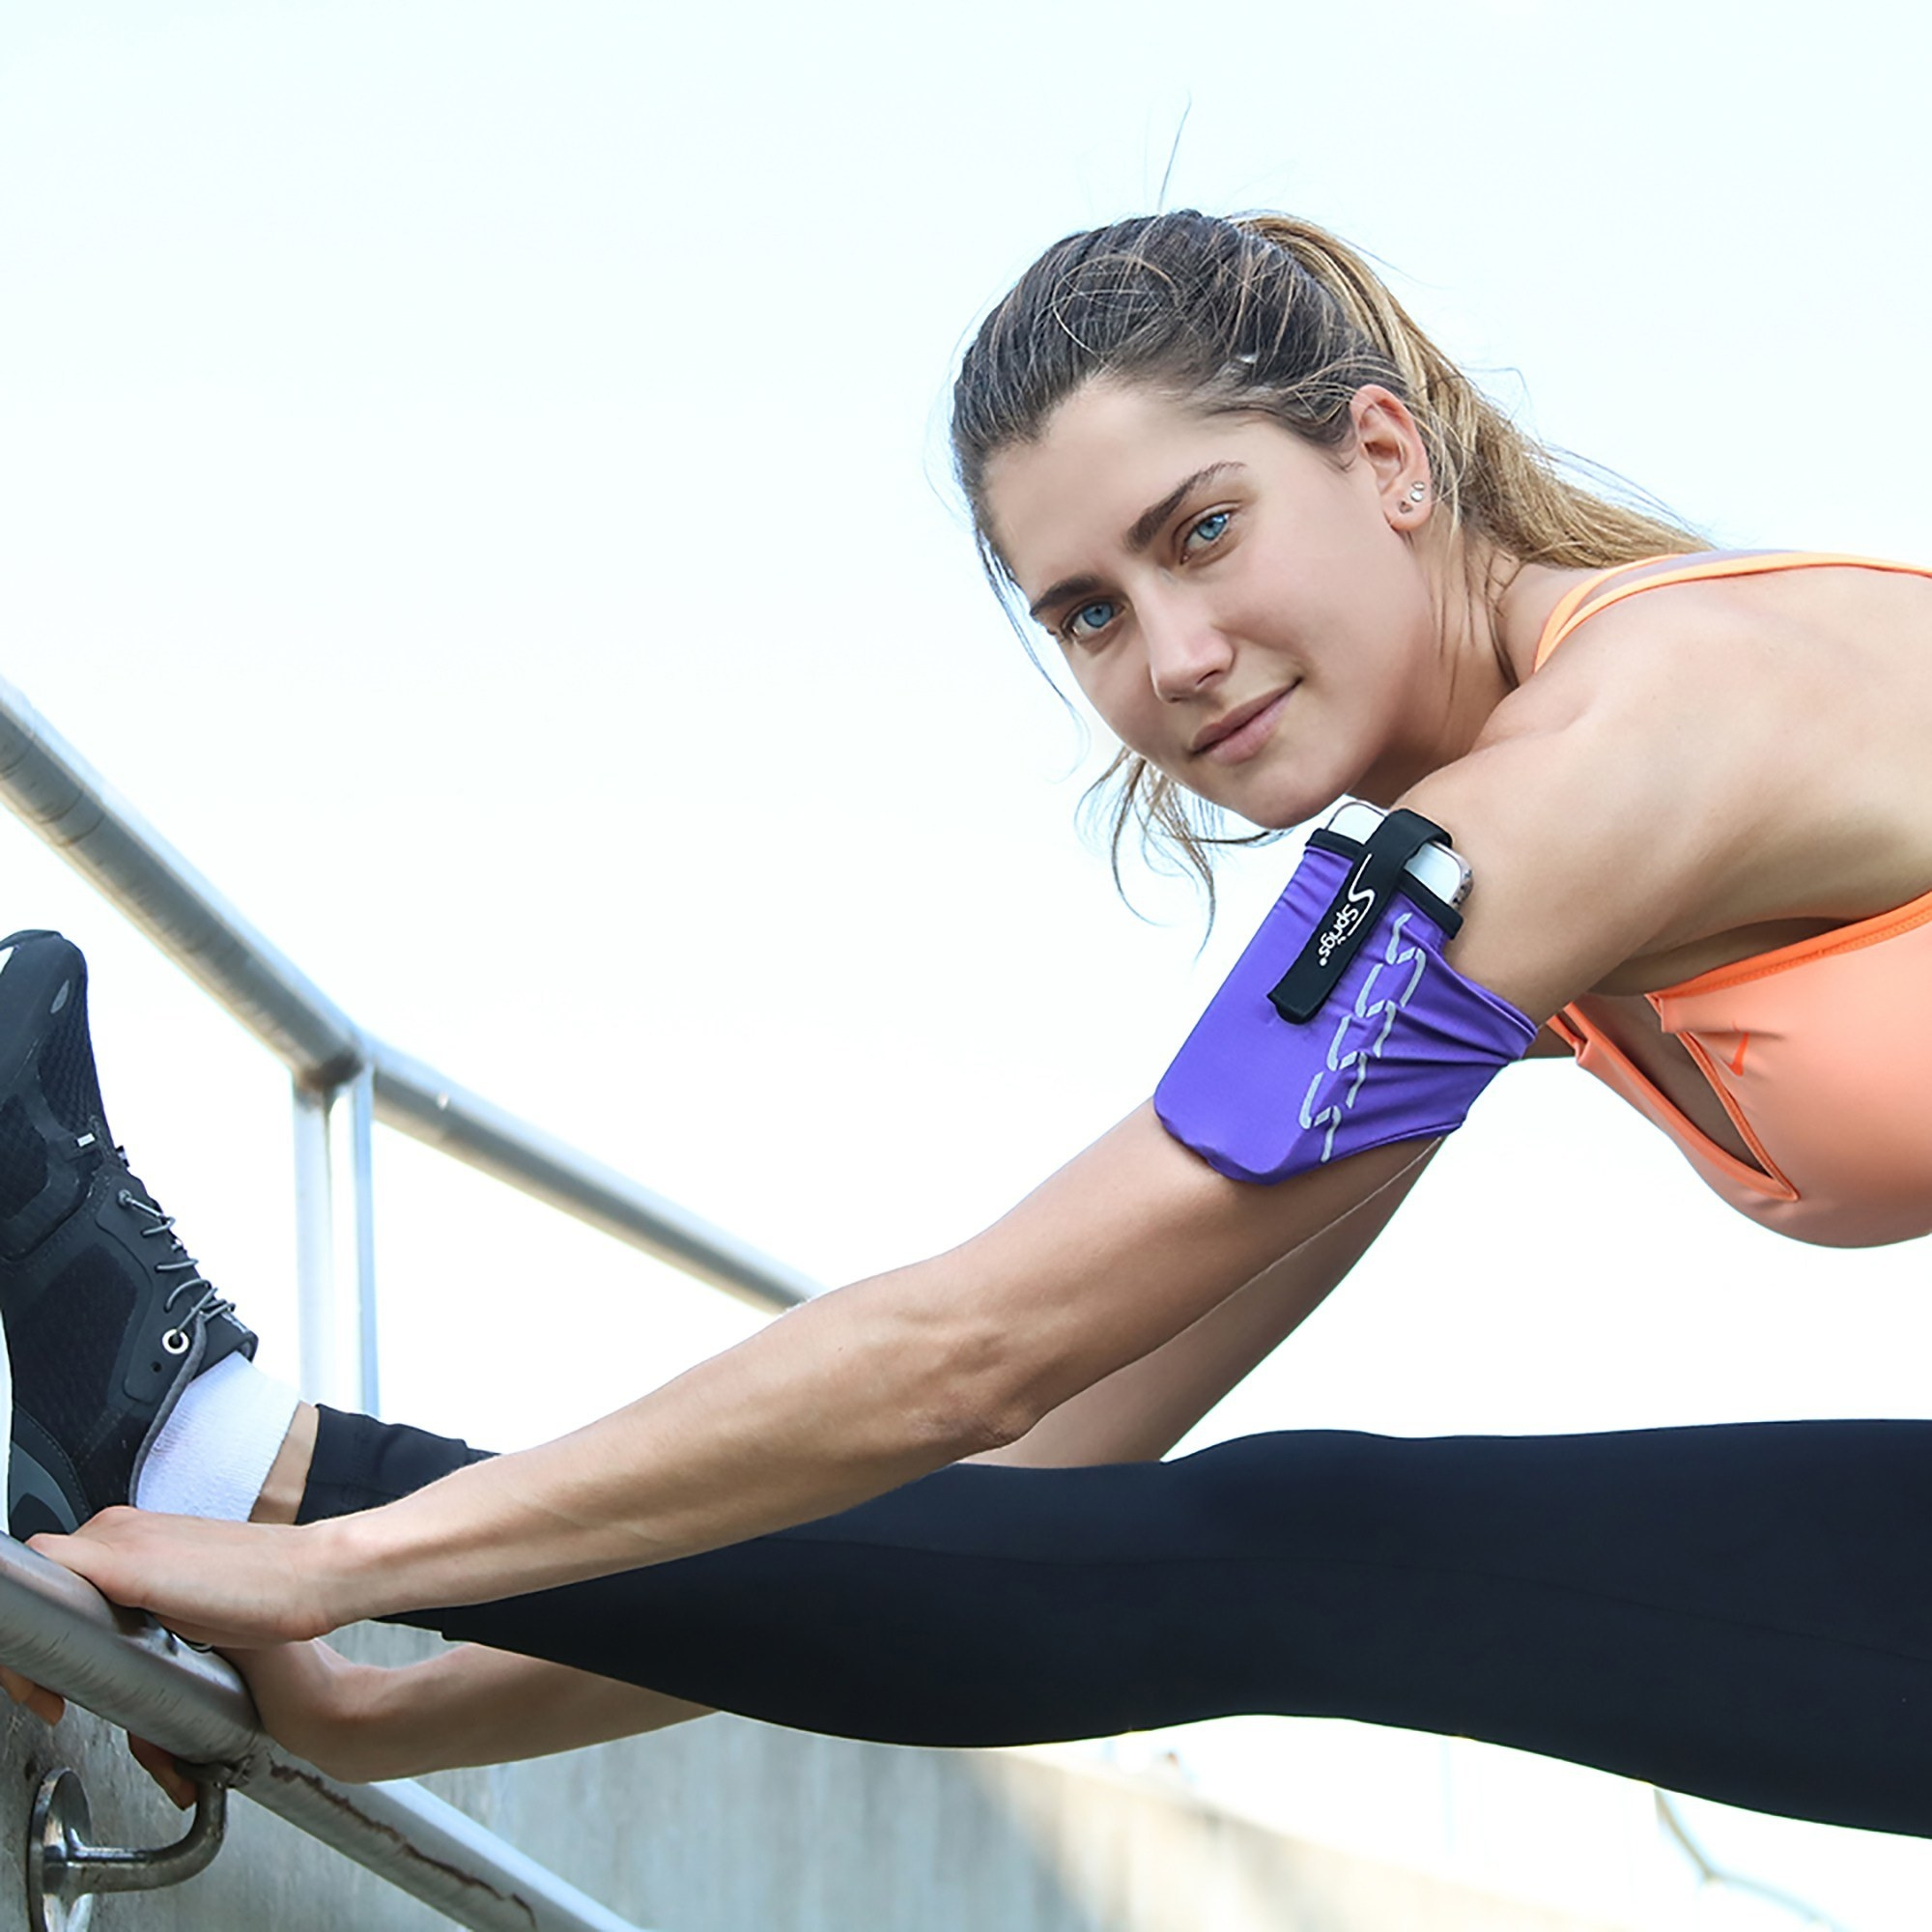 model stretches leg while wearing purple armband on their arm